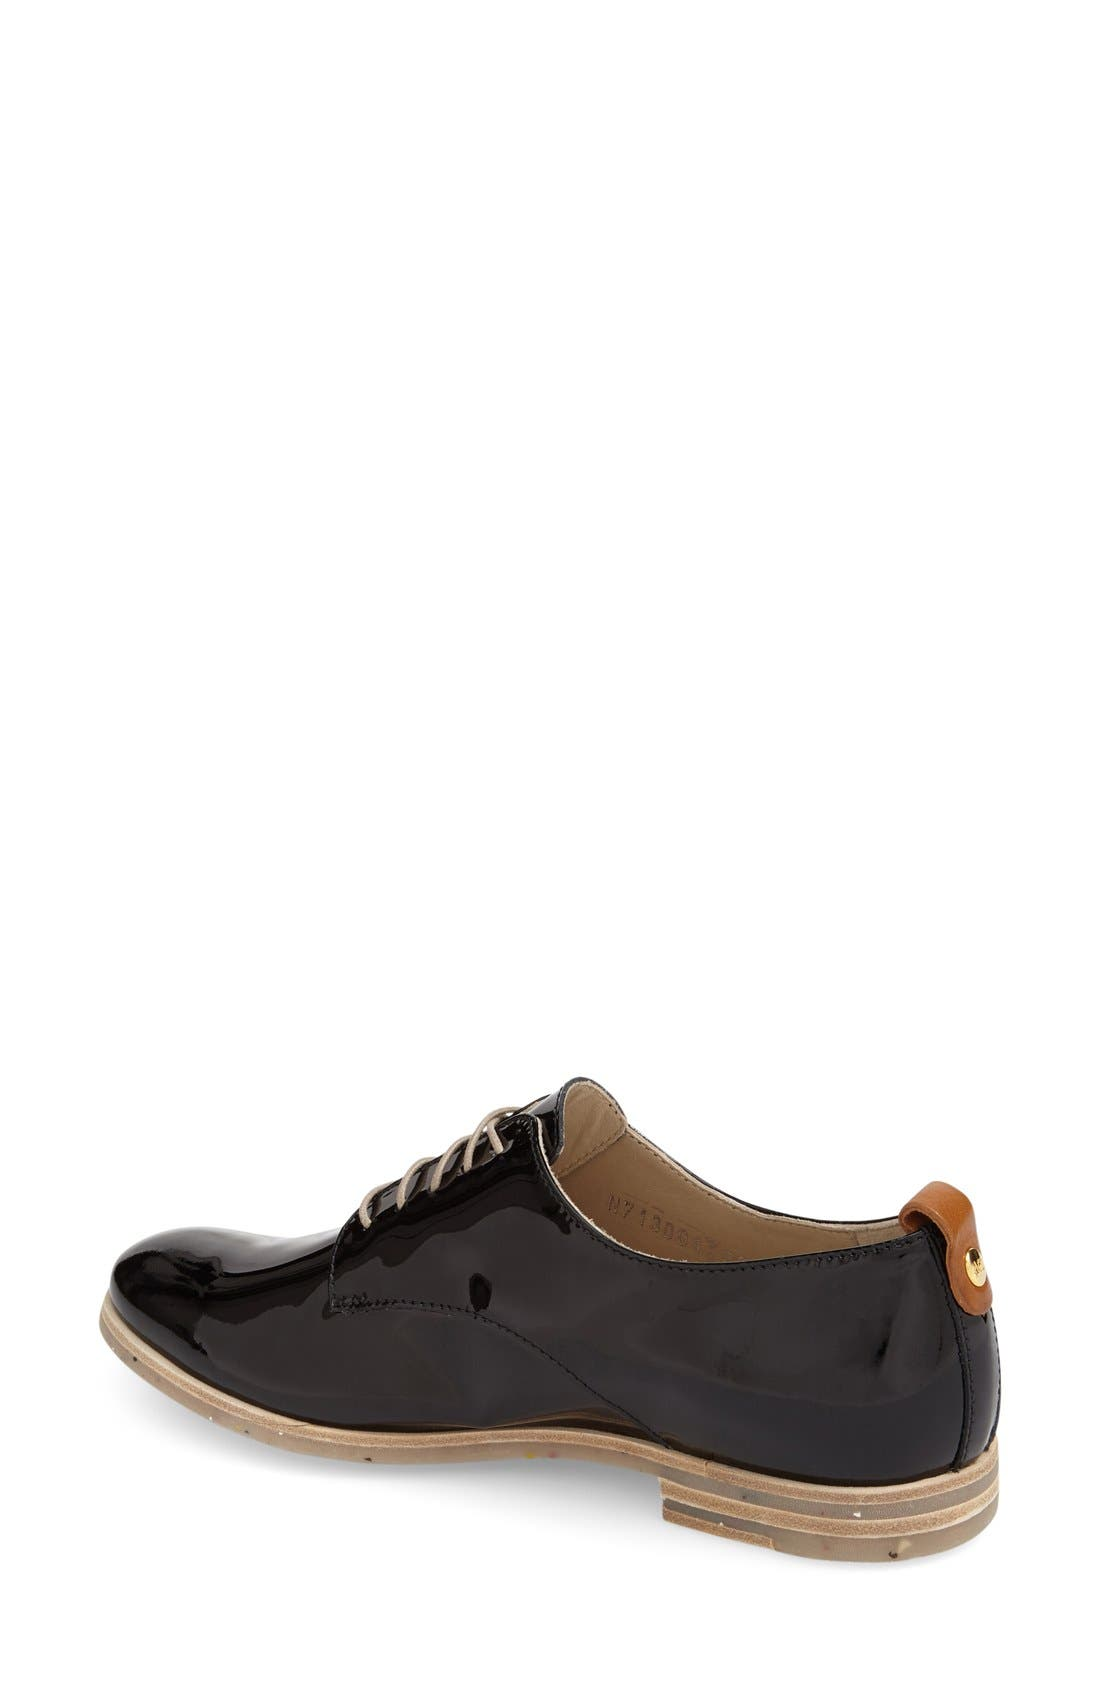 Alternate Image 2  - AGL Double Sole Oxford (Women)